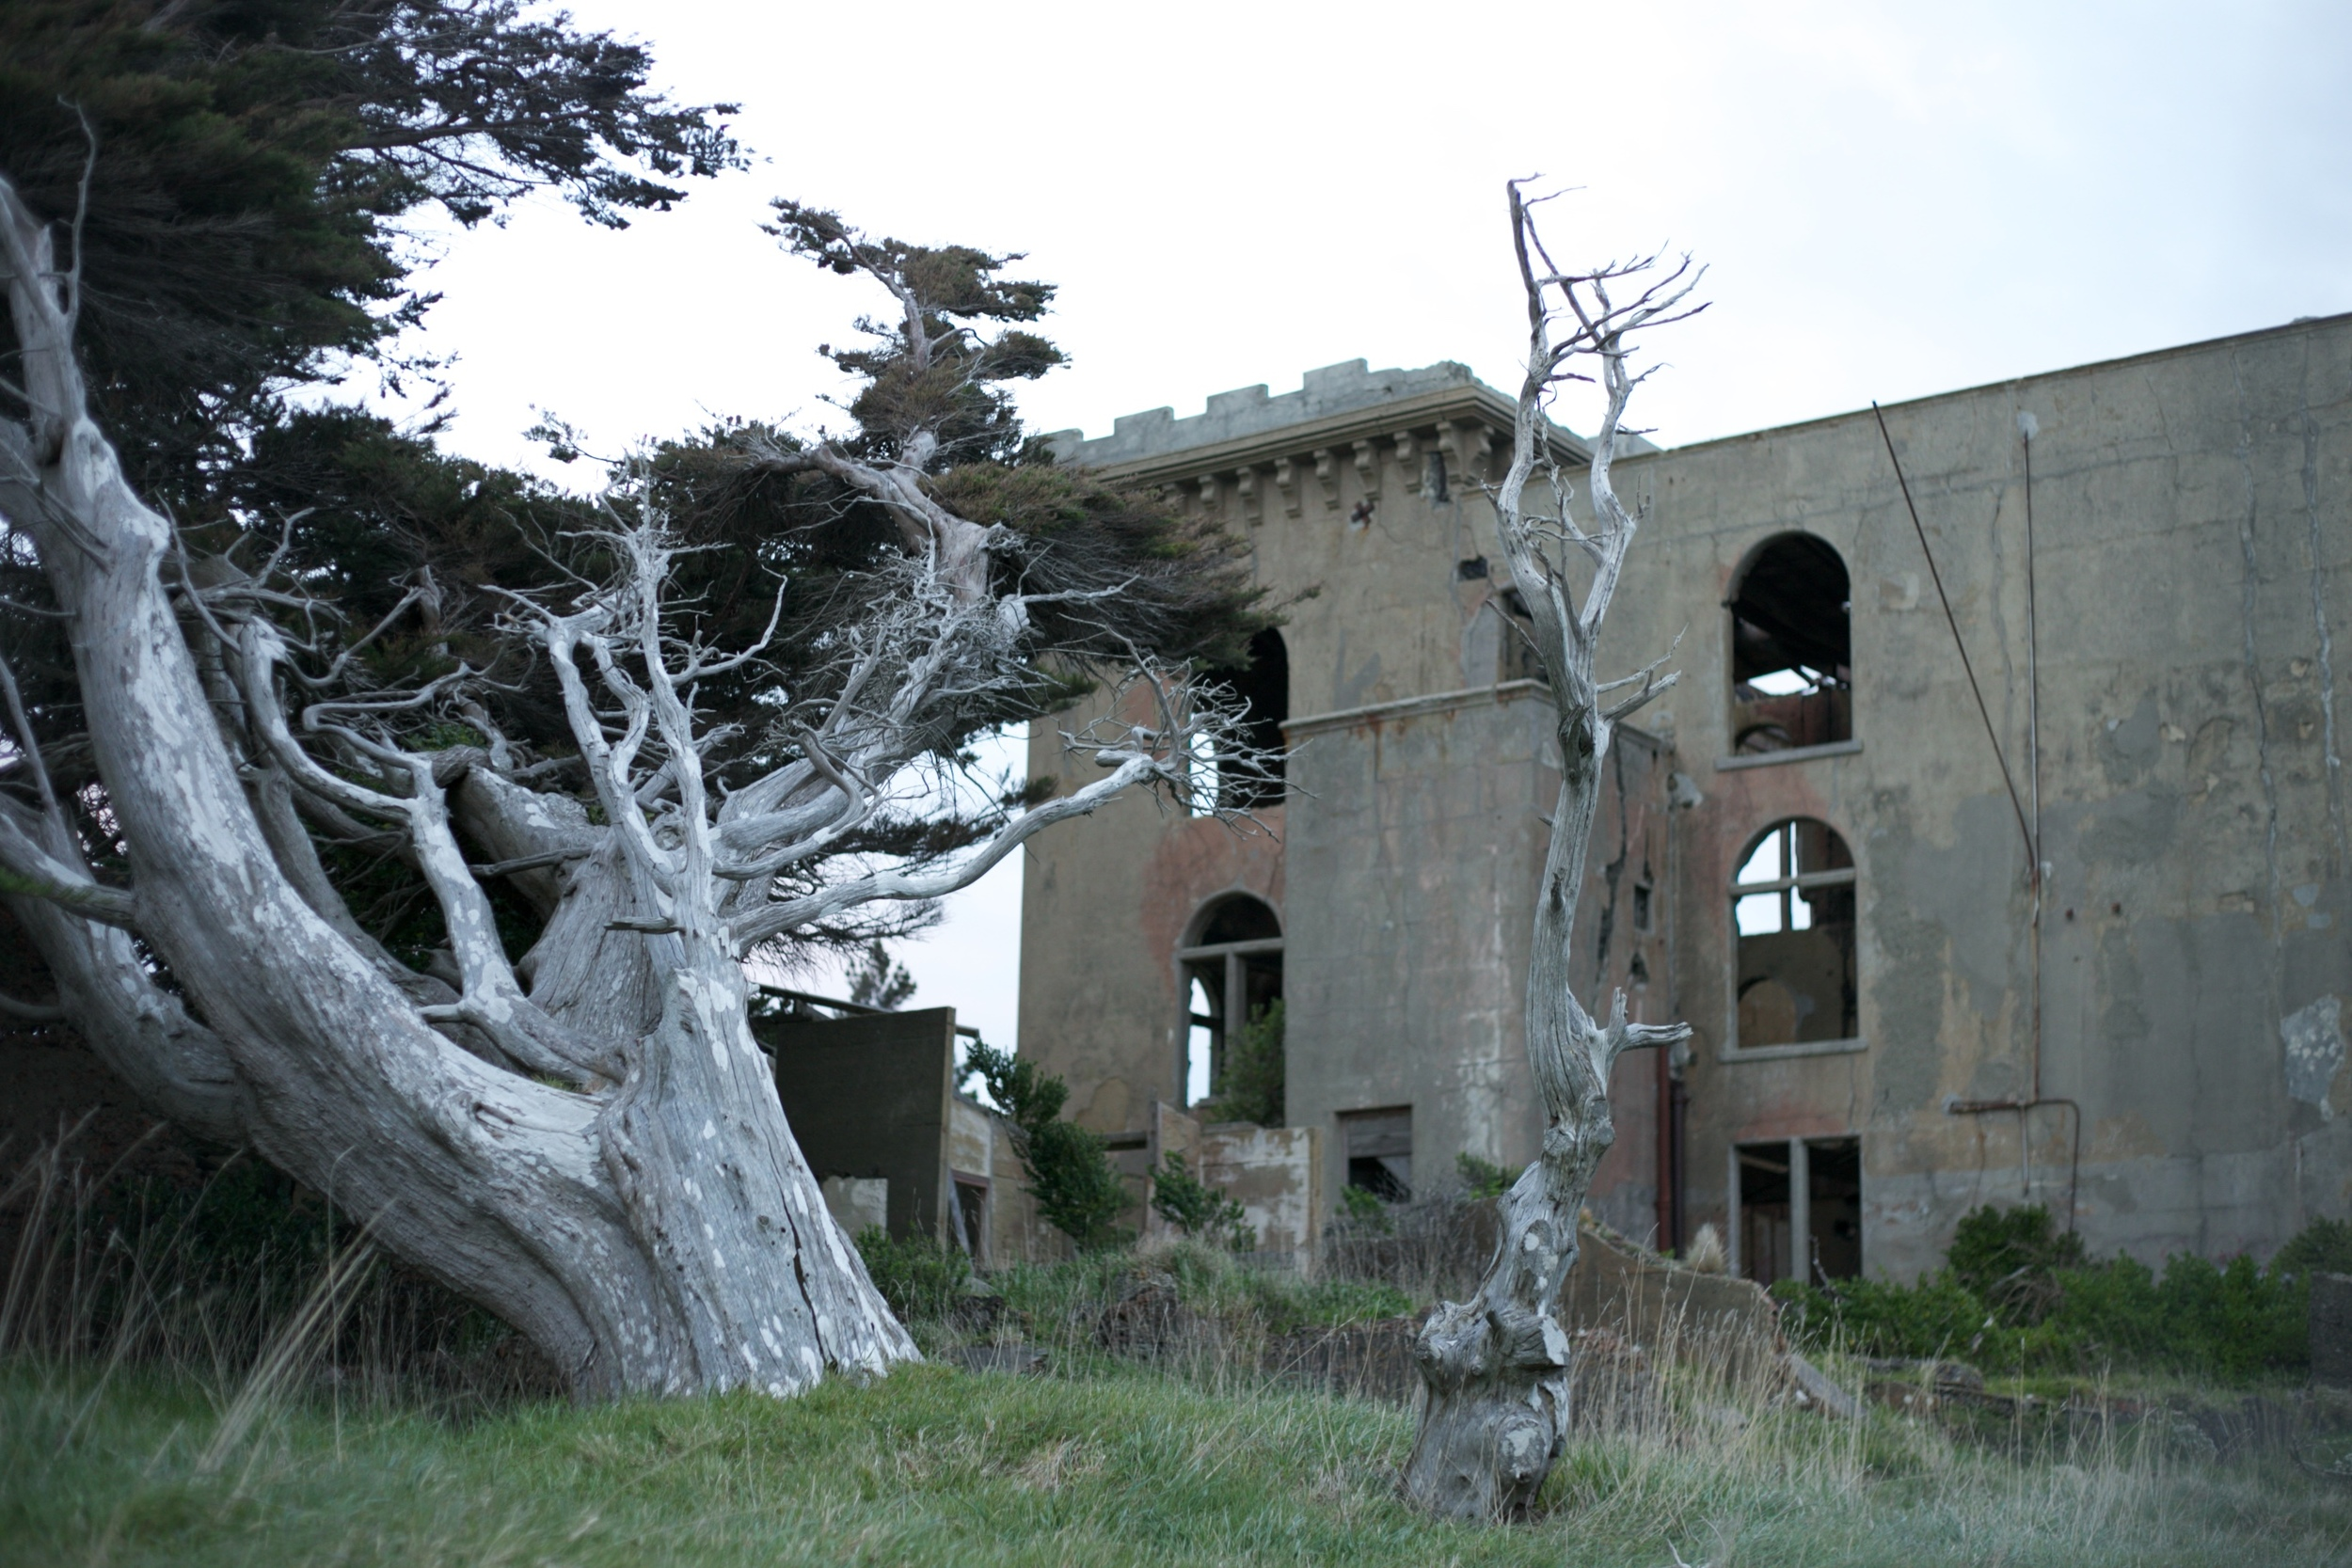 Twisted trees and an abandoned NZ castle.